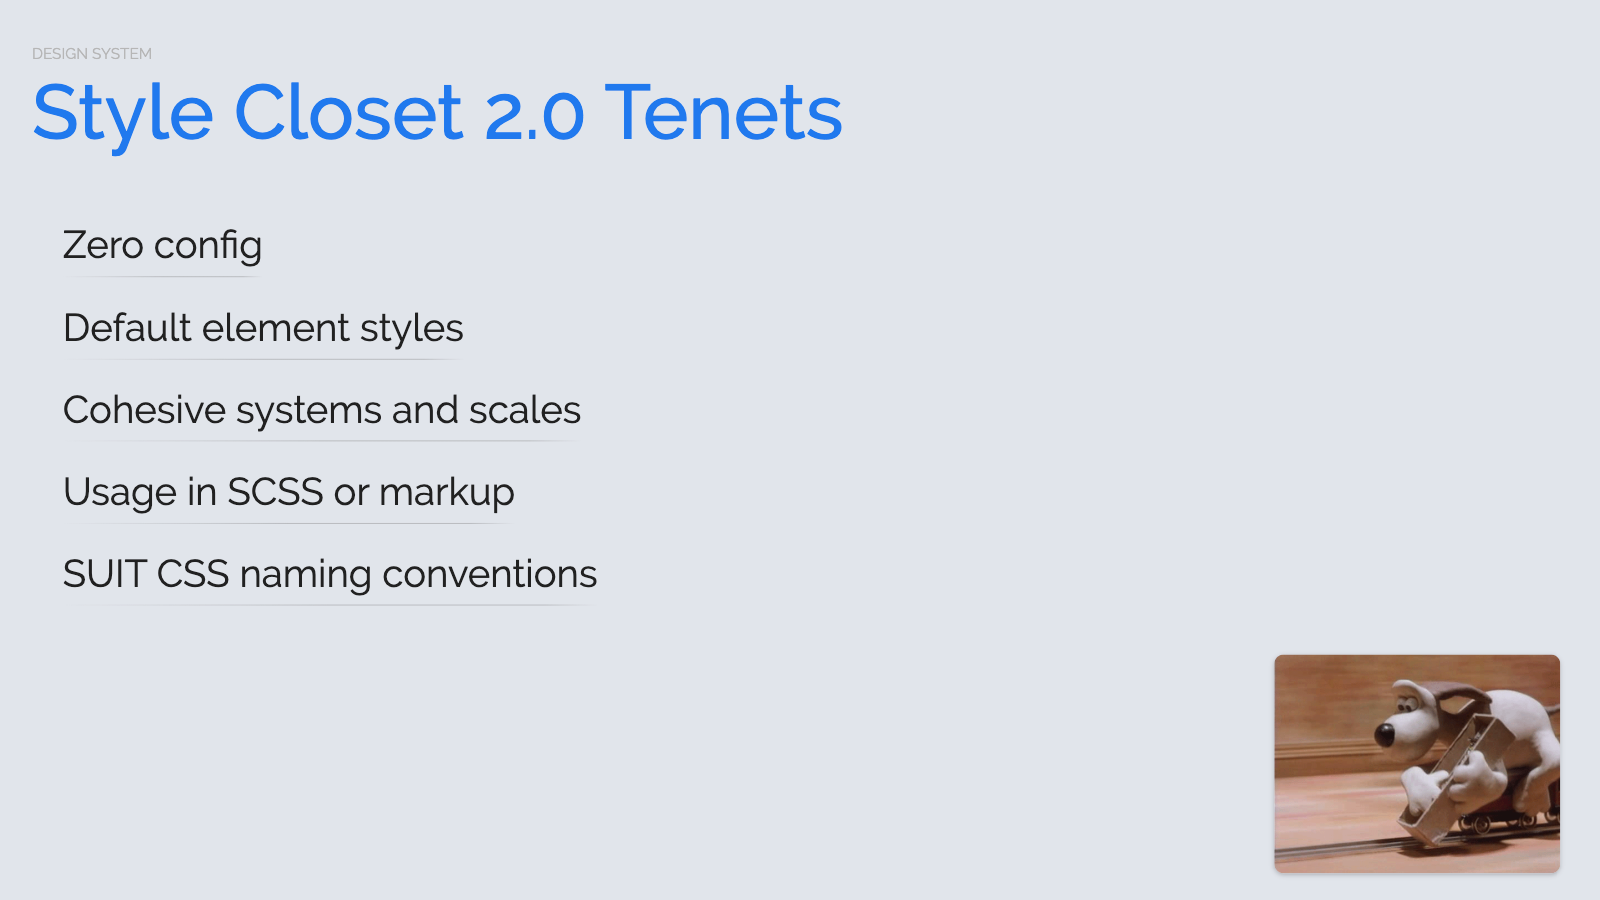 Slide content, Style Closet 2.0 tenets